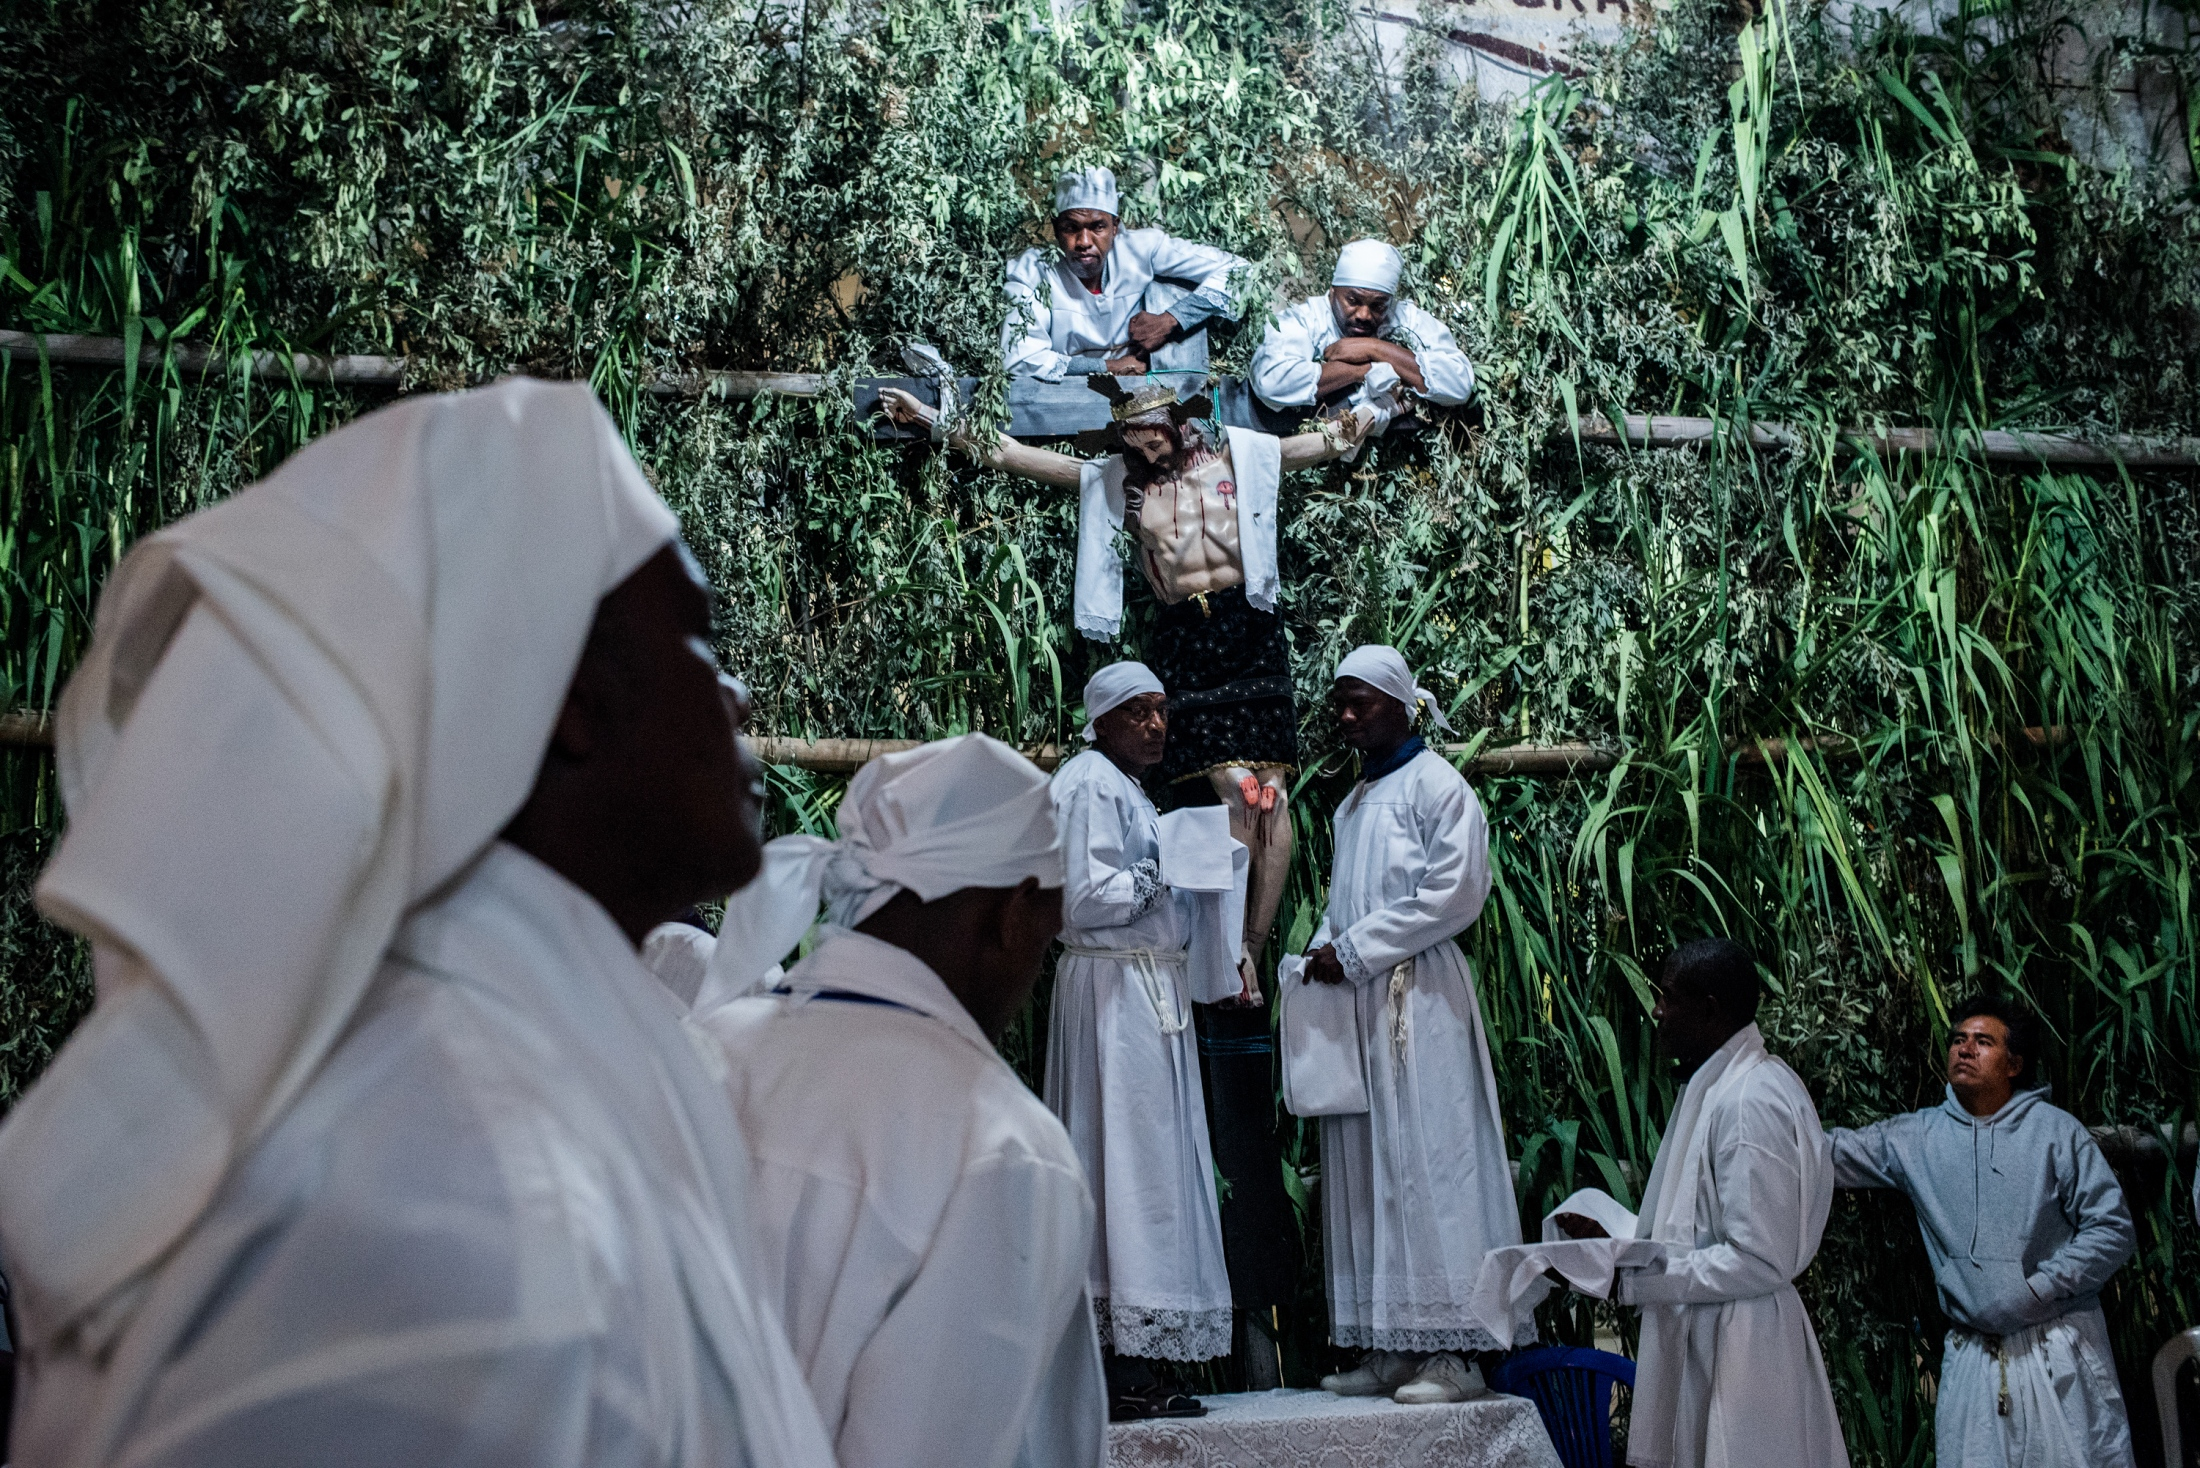 Holy Week, the ritual celebrating the descent of Chris, takes place every year in the church of El Juncal. The men in white are in charge of carrying Christ down from the main altar and taking him to the procession. The statue is carried around the town streets among songs, candles and prayers. Juncal, 2018